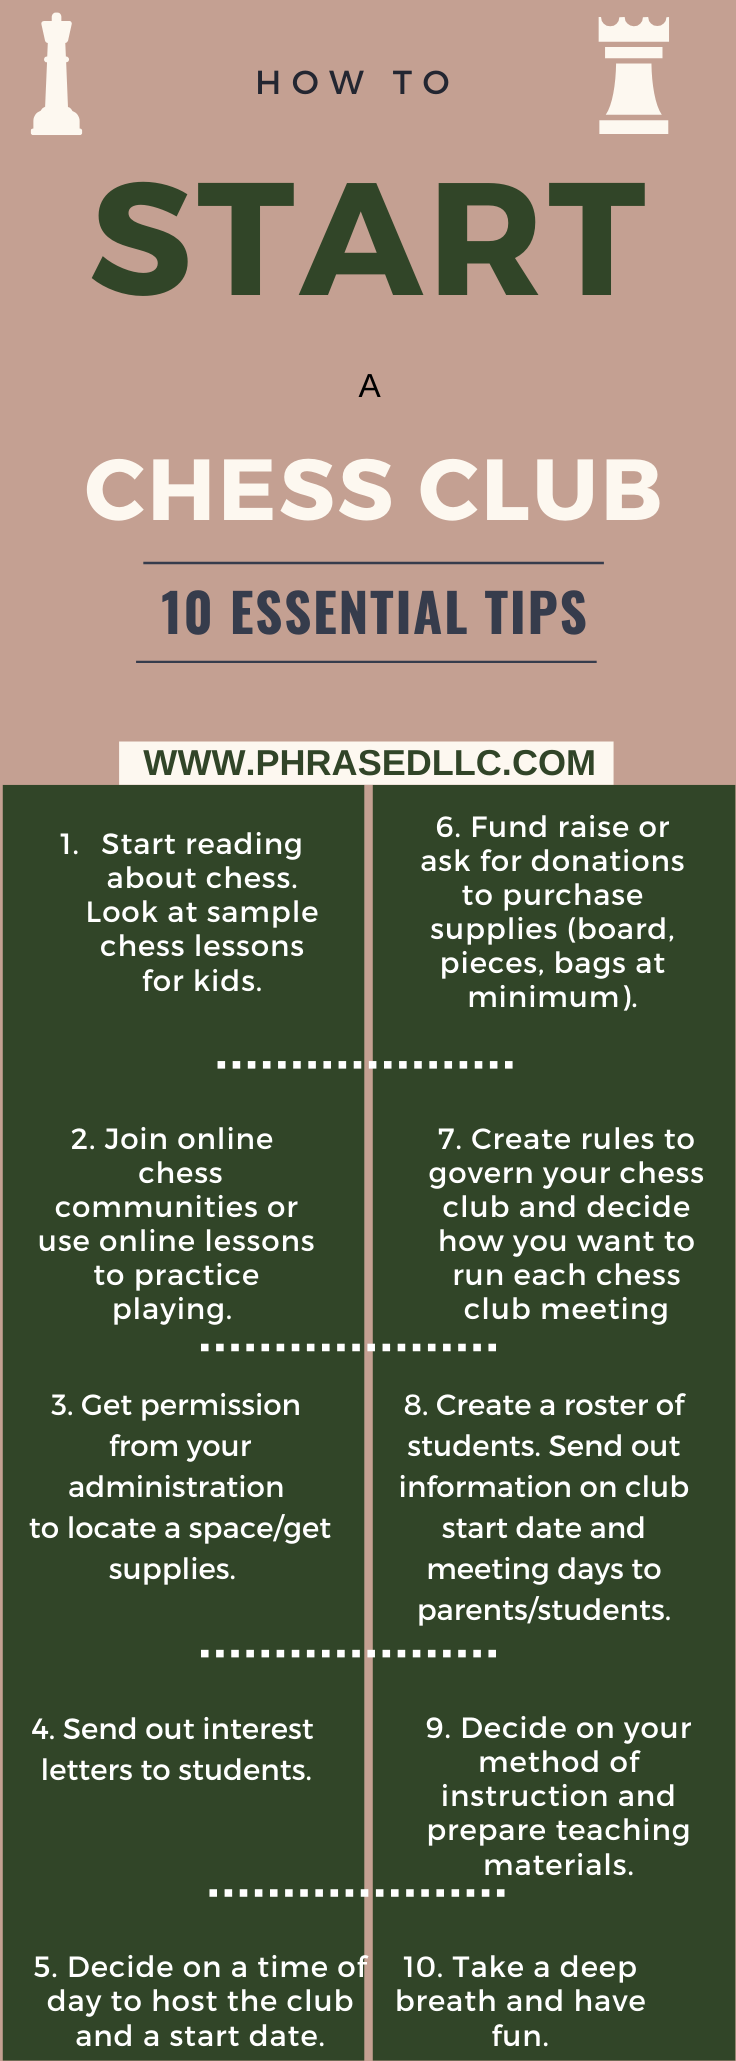 Tips on how to start a chess club in a school or community organization.